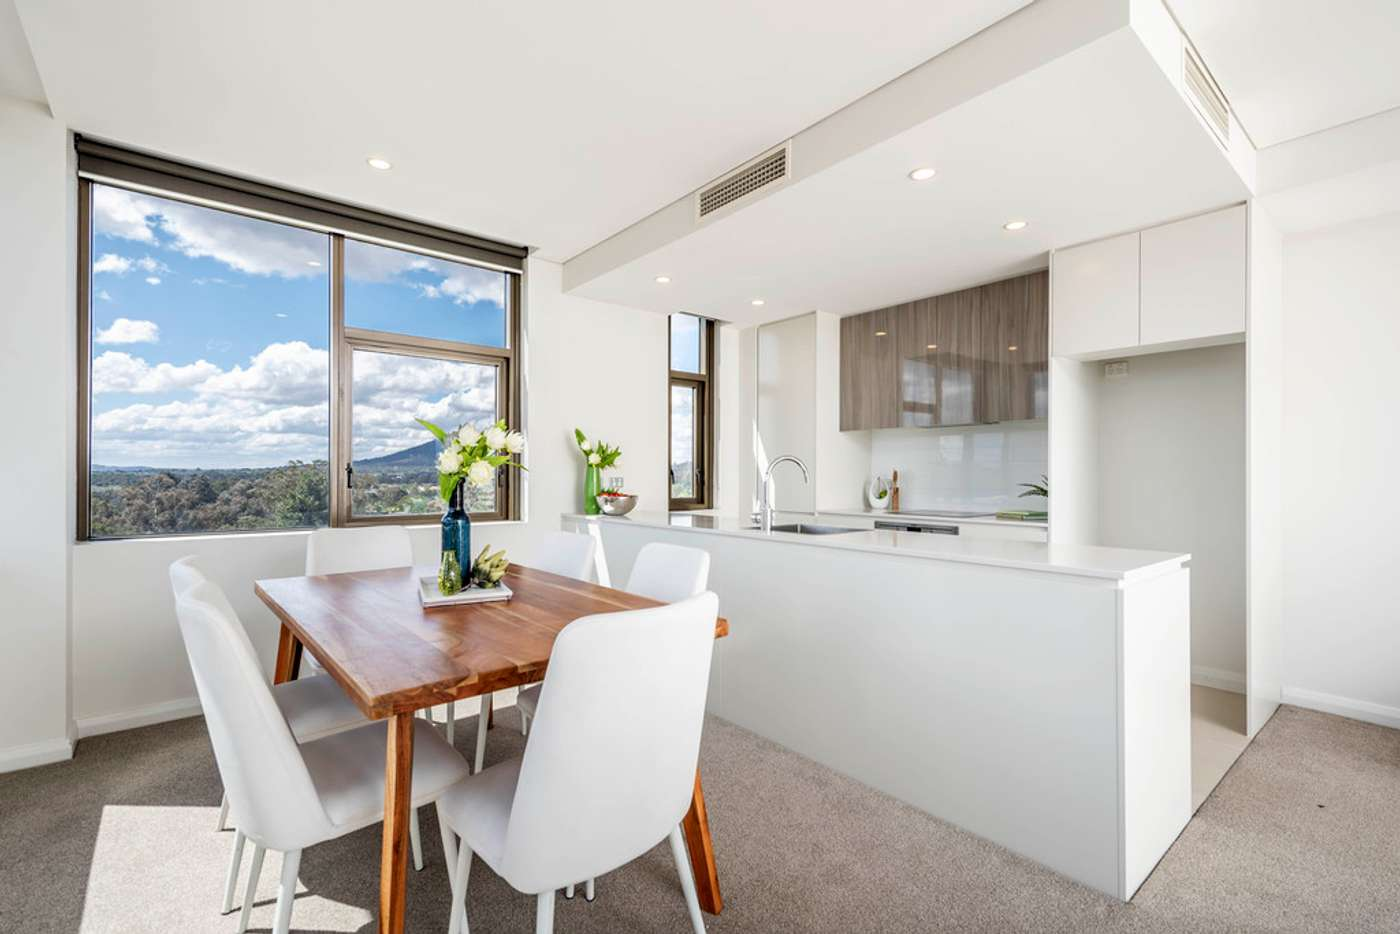 Seventh view of Homely apartment listing, 62/30 Blackall Street, Barton ACT 2600